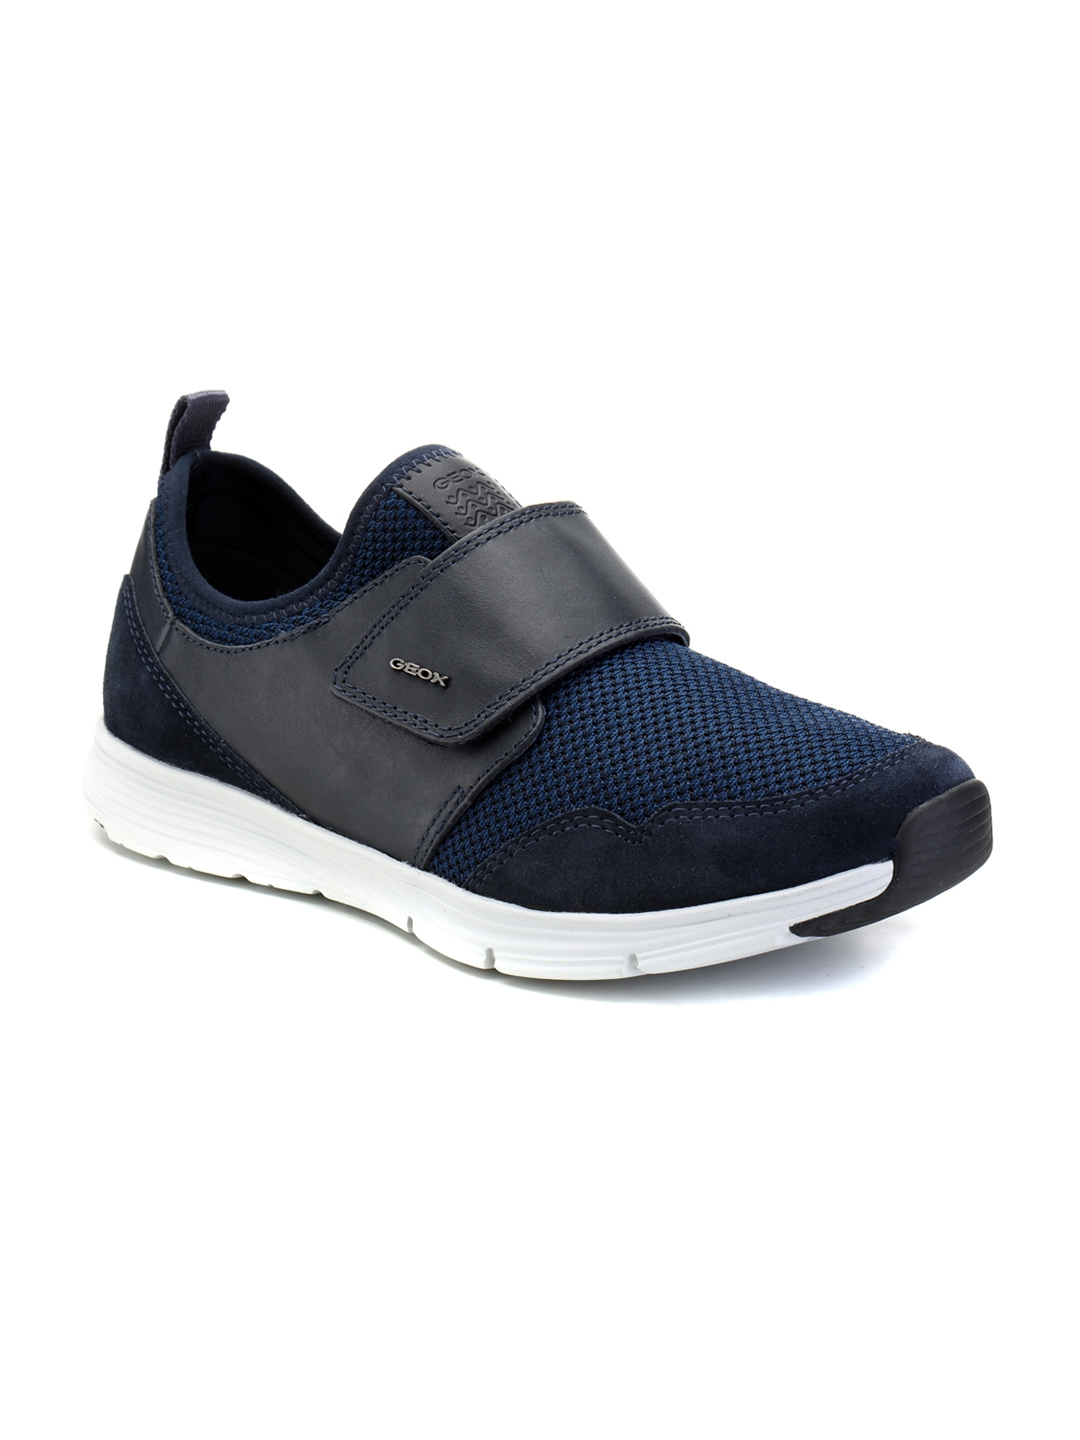 268027e6ab Buy Geox Men Navy Sneakers - Casual Shoes for Men 2194399 | Myntra